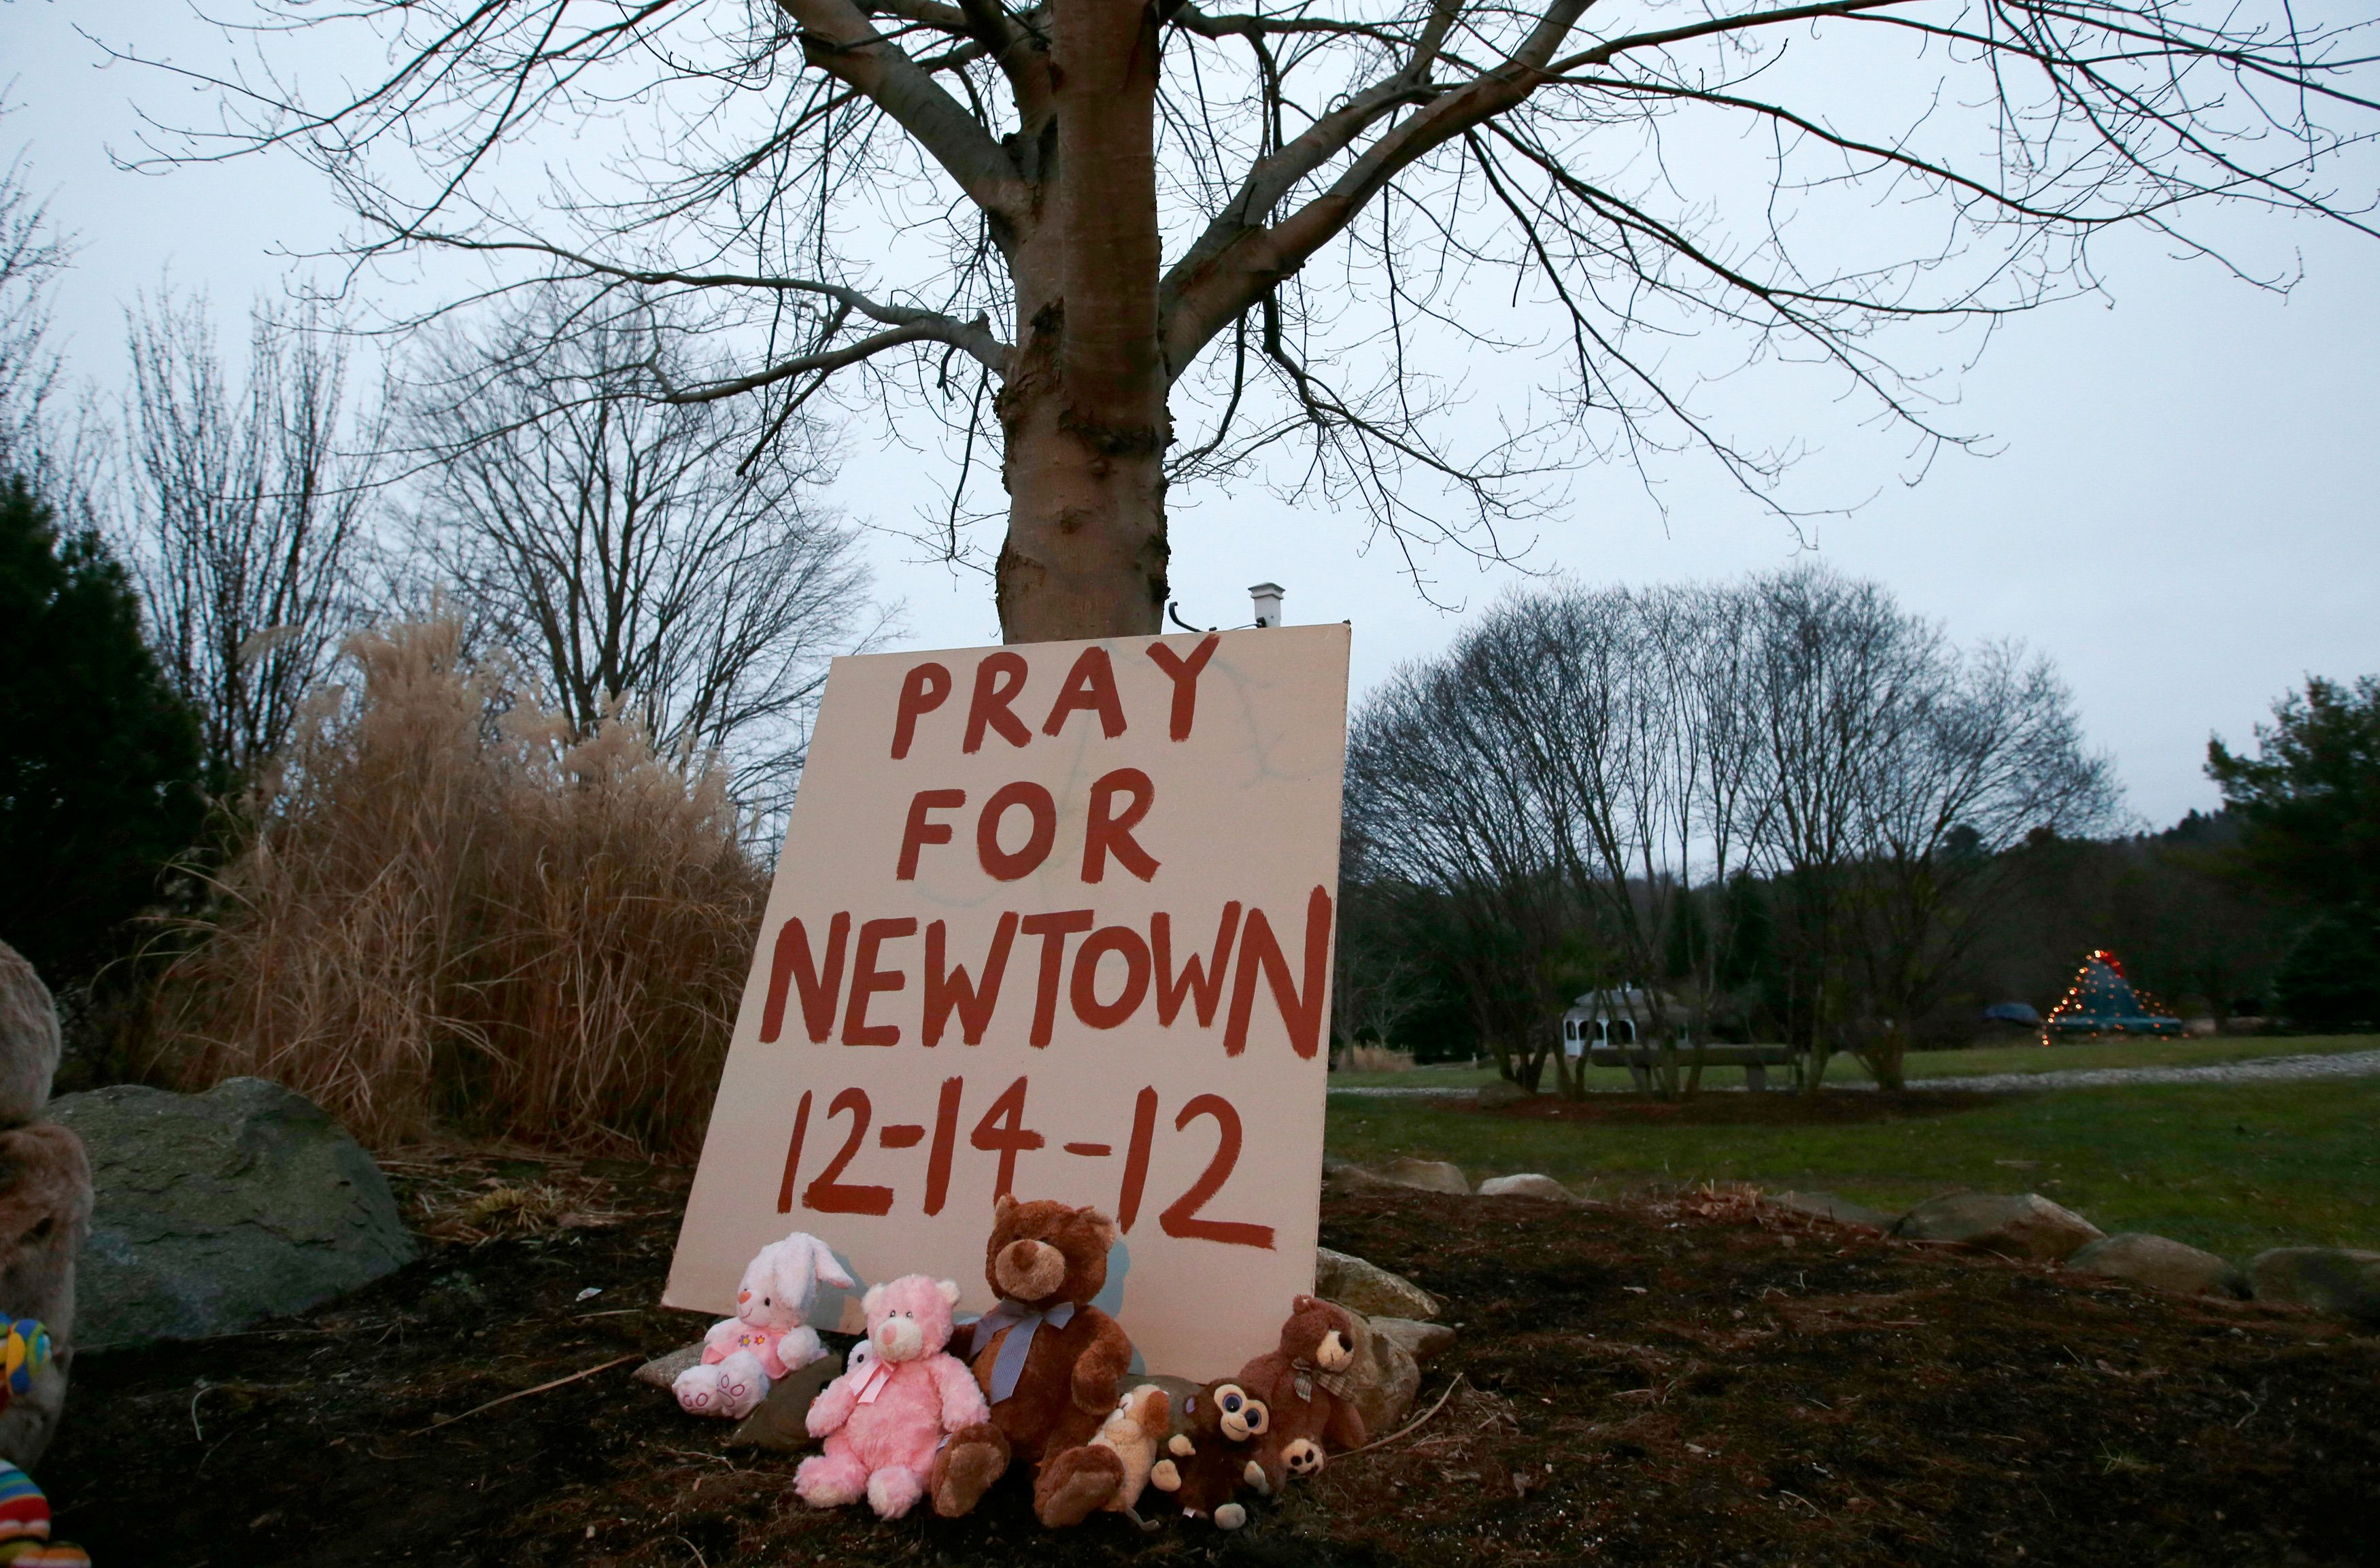 A sign stands at a makeshift memorial in Newtown, Connecticut early Sunday December 16, 2012. Twelve girls, eight boys and six adult women were killed in the shooting on Friday at the Sandy Hook Elementary School in Newtown.  REUTERS/Mike Segar   (UNITED STATES - Tags: CRIME LAW EDUCATION TPX IMAGES OF THE DAY)